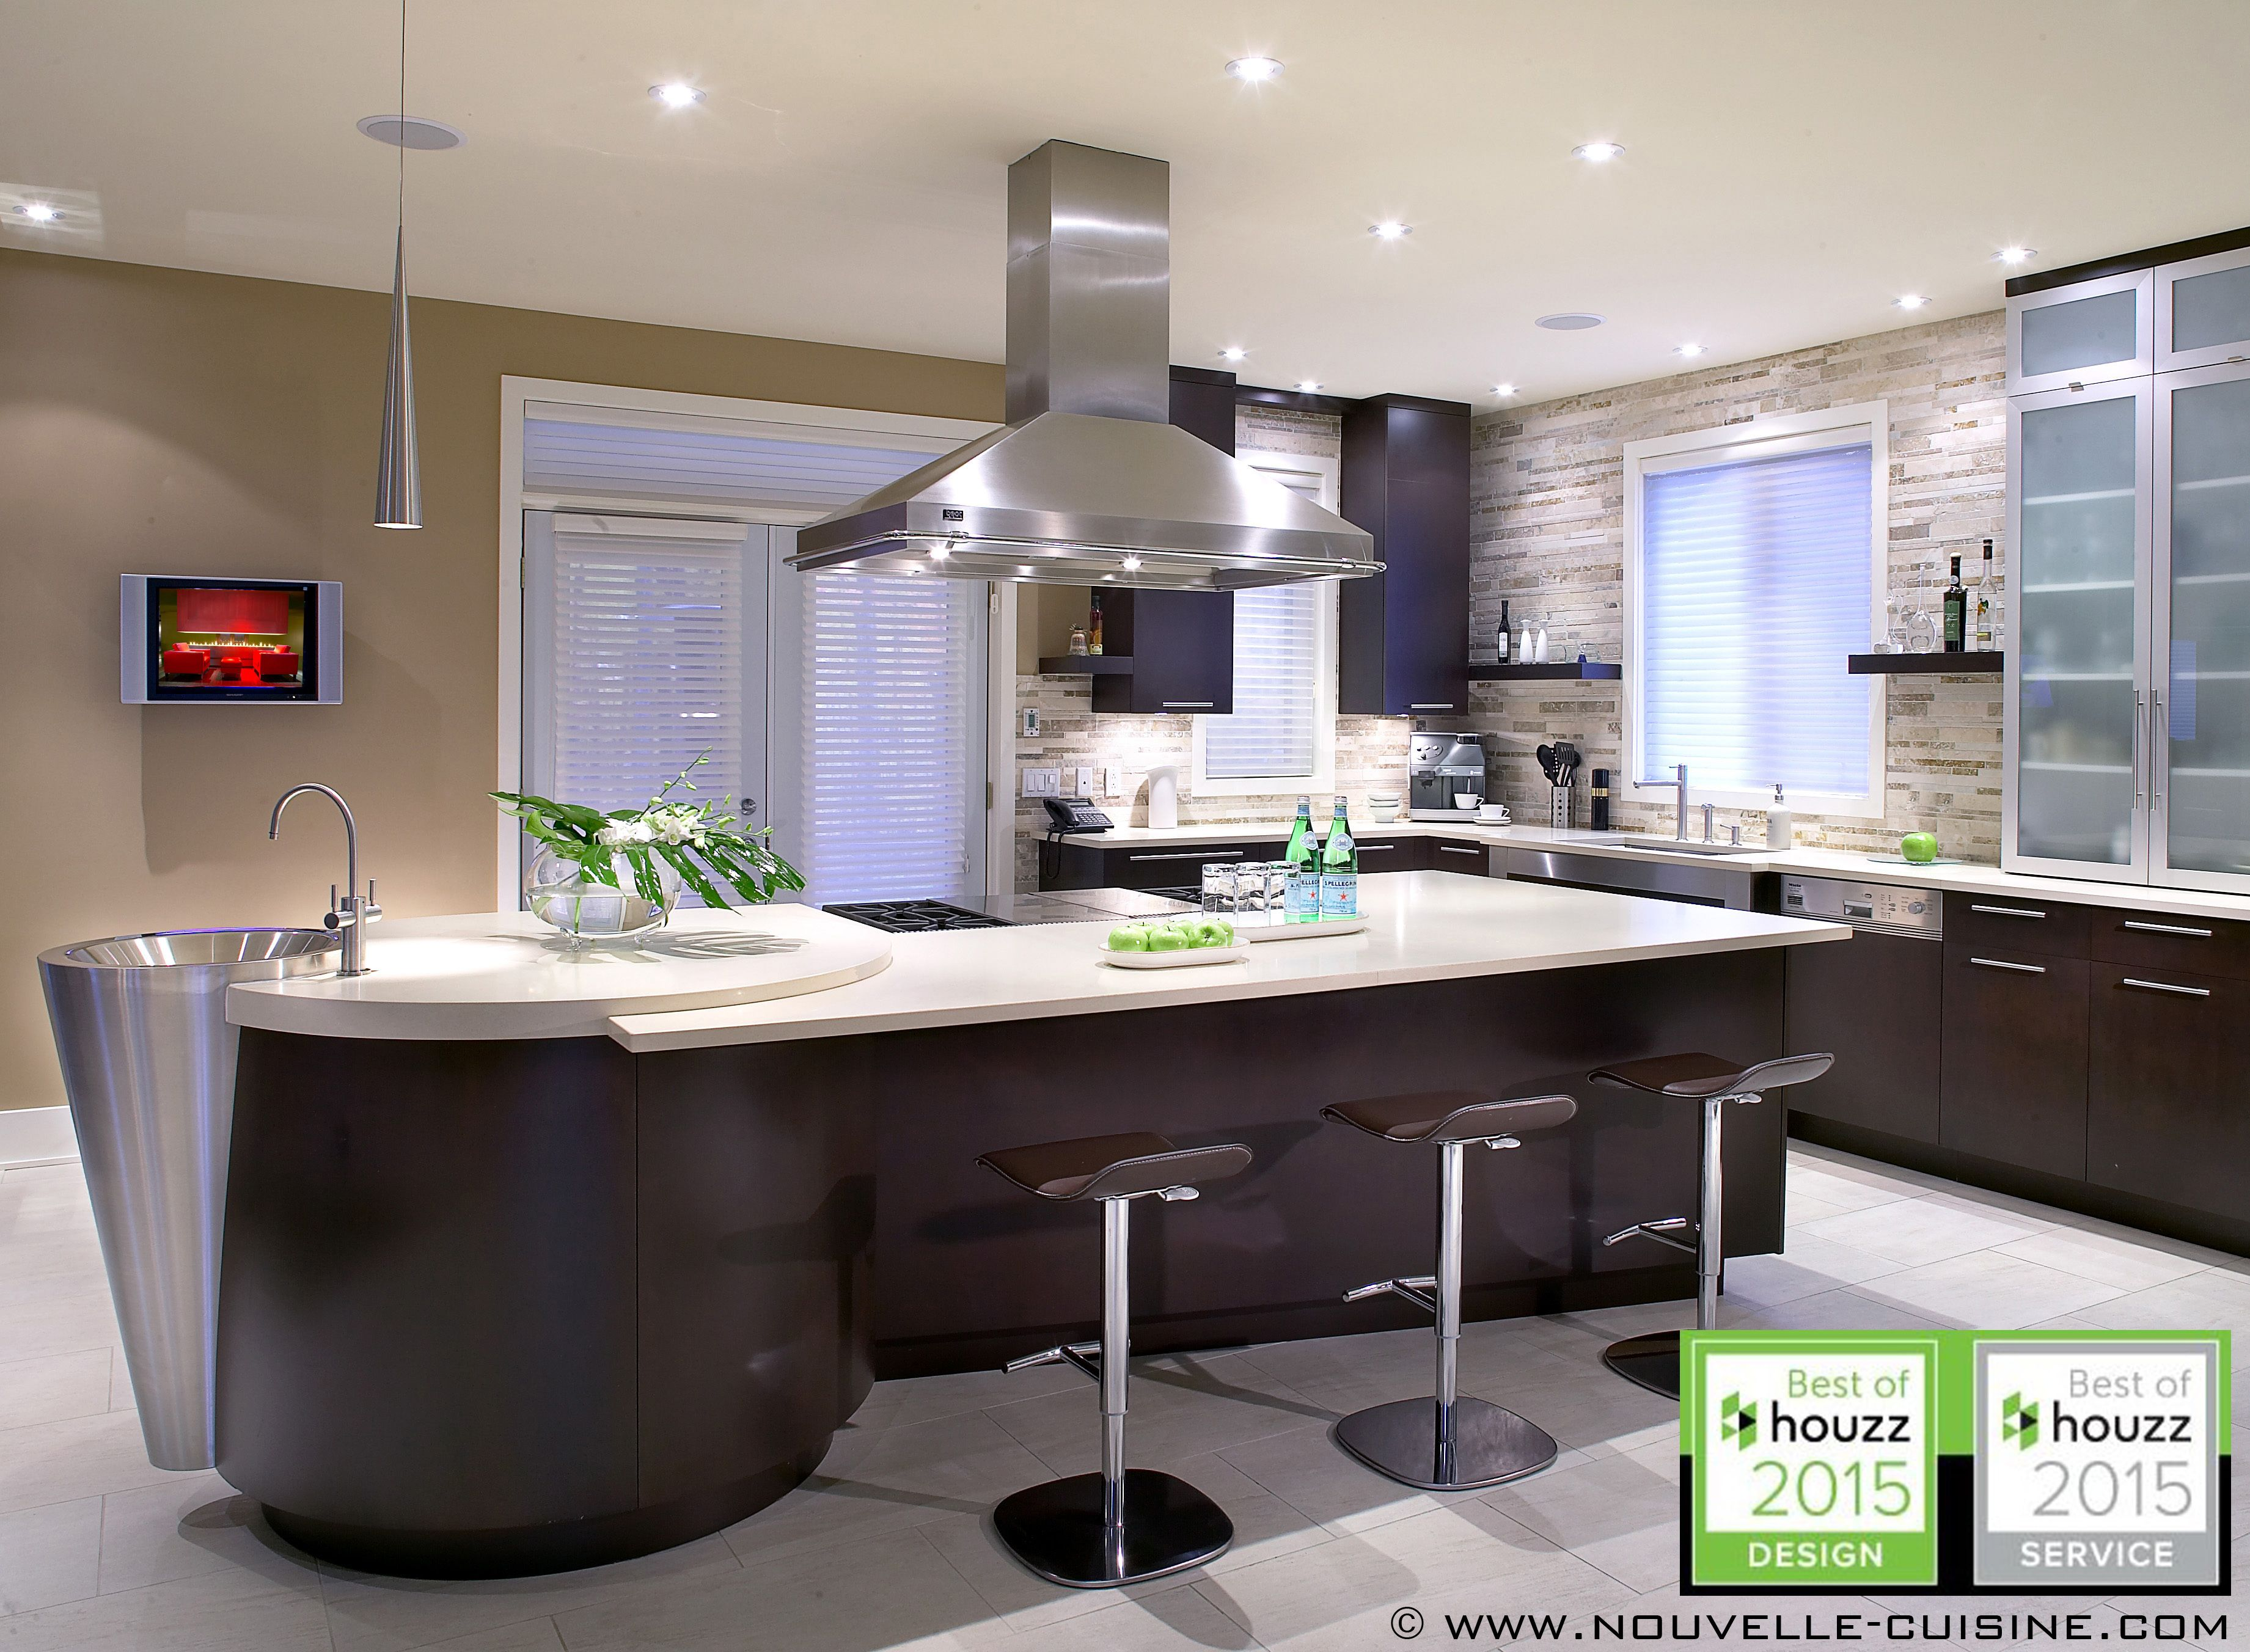 Cherry Wood Veneer Cabinets And White Quartz Countertops Can Be Found In This Modern Kitchen D American Kitchen Design Kitchen Cabinets Decor Kitchen Design